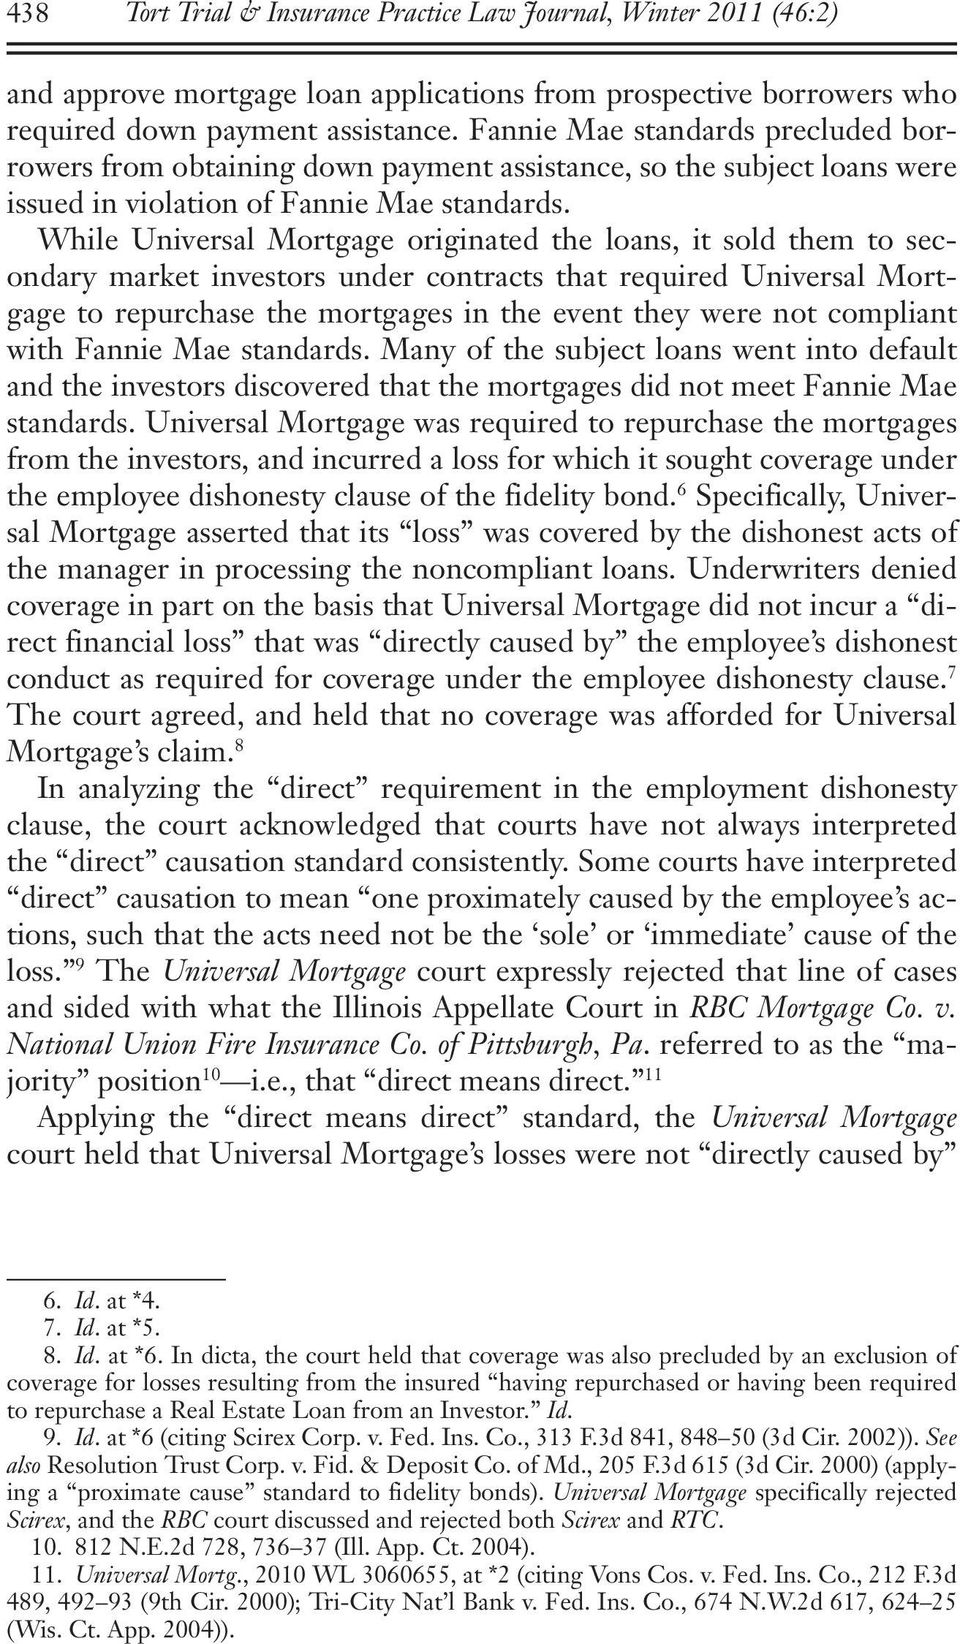 While Universal Mortgage originated the loans, it sold them to secondary market investors under contracts that required Universal Mortgage to repurchase the mortgages in the event they were not